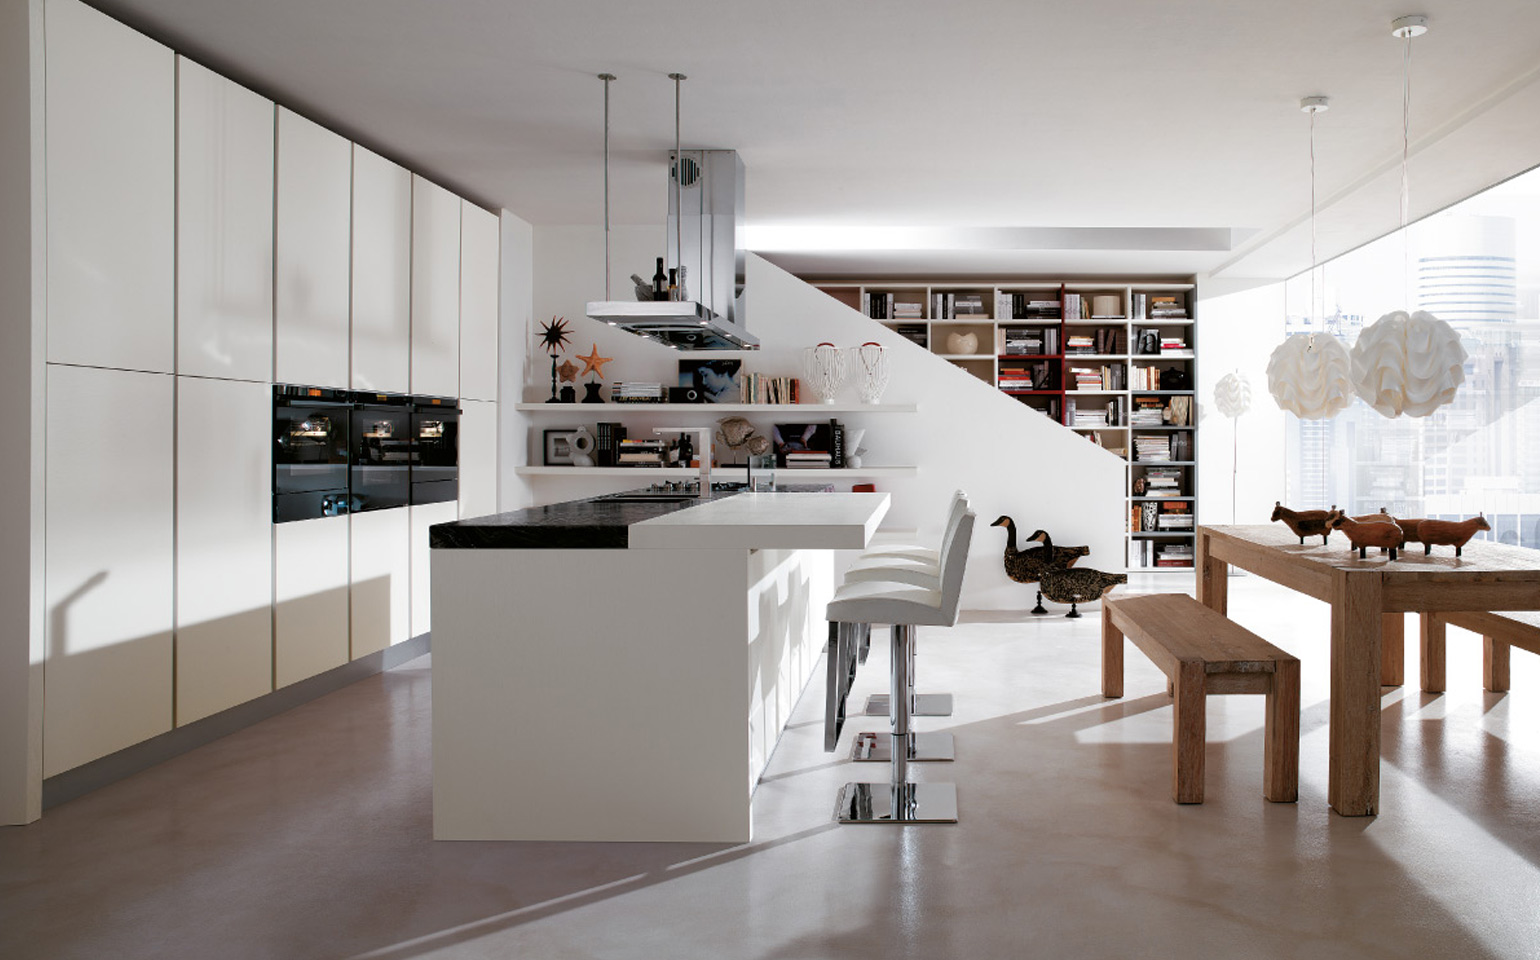 Awesome Cucine Economiche Firenze Photos - Ideas & Design 2017 ...